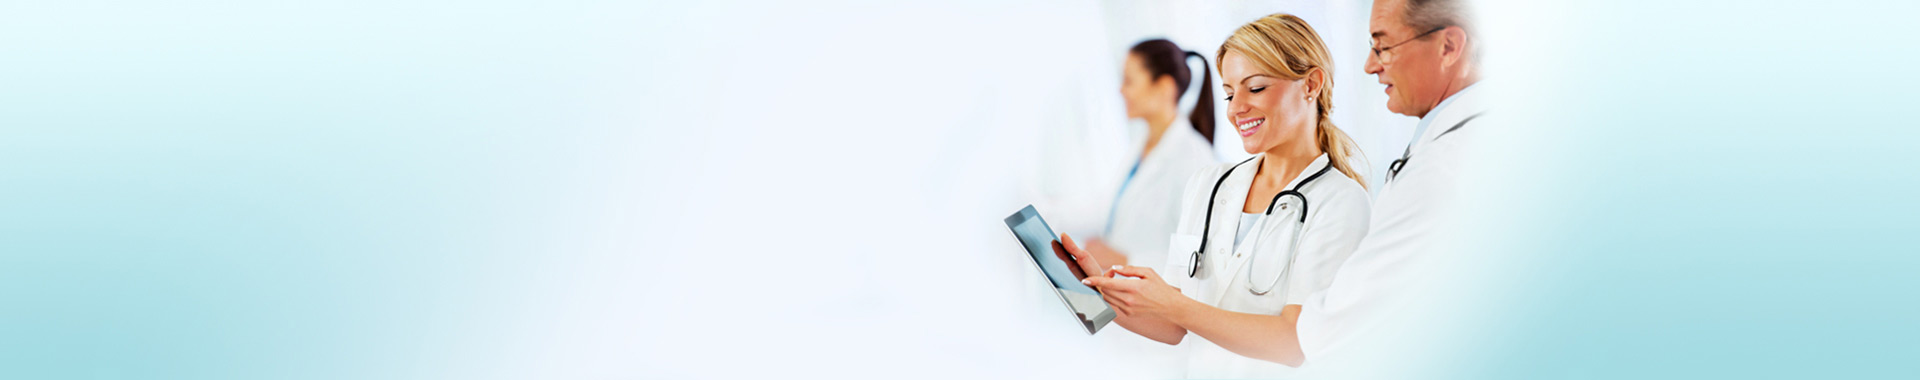 Doctors using a tablet device